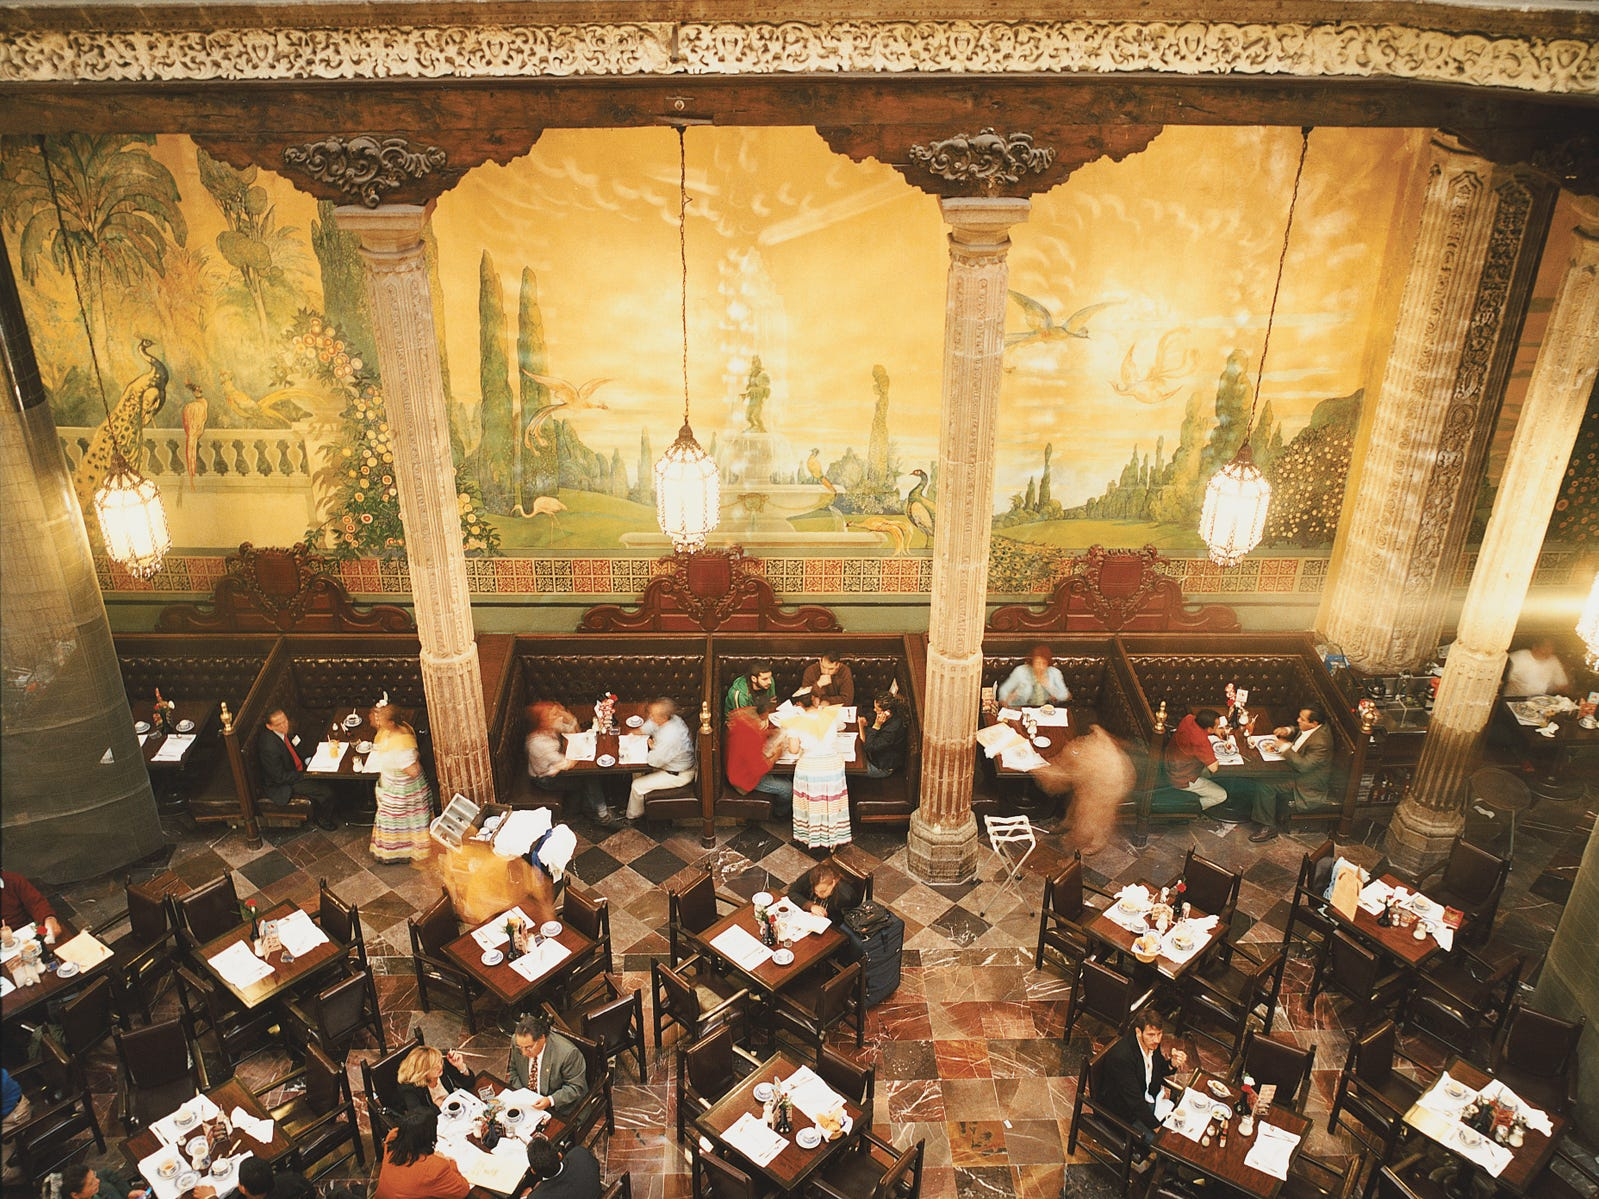 The interior of Sanborns Casa de los Azulejos restaurant features floor-to-ceiling murals in the courtyard of the historic palace.